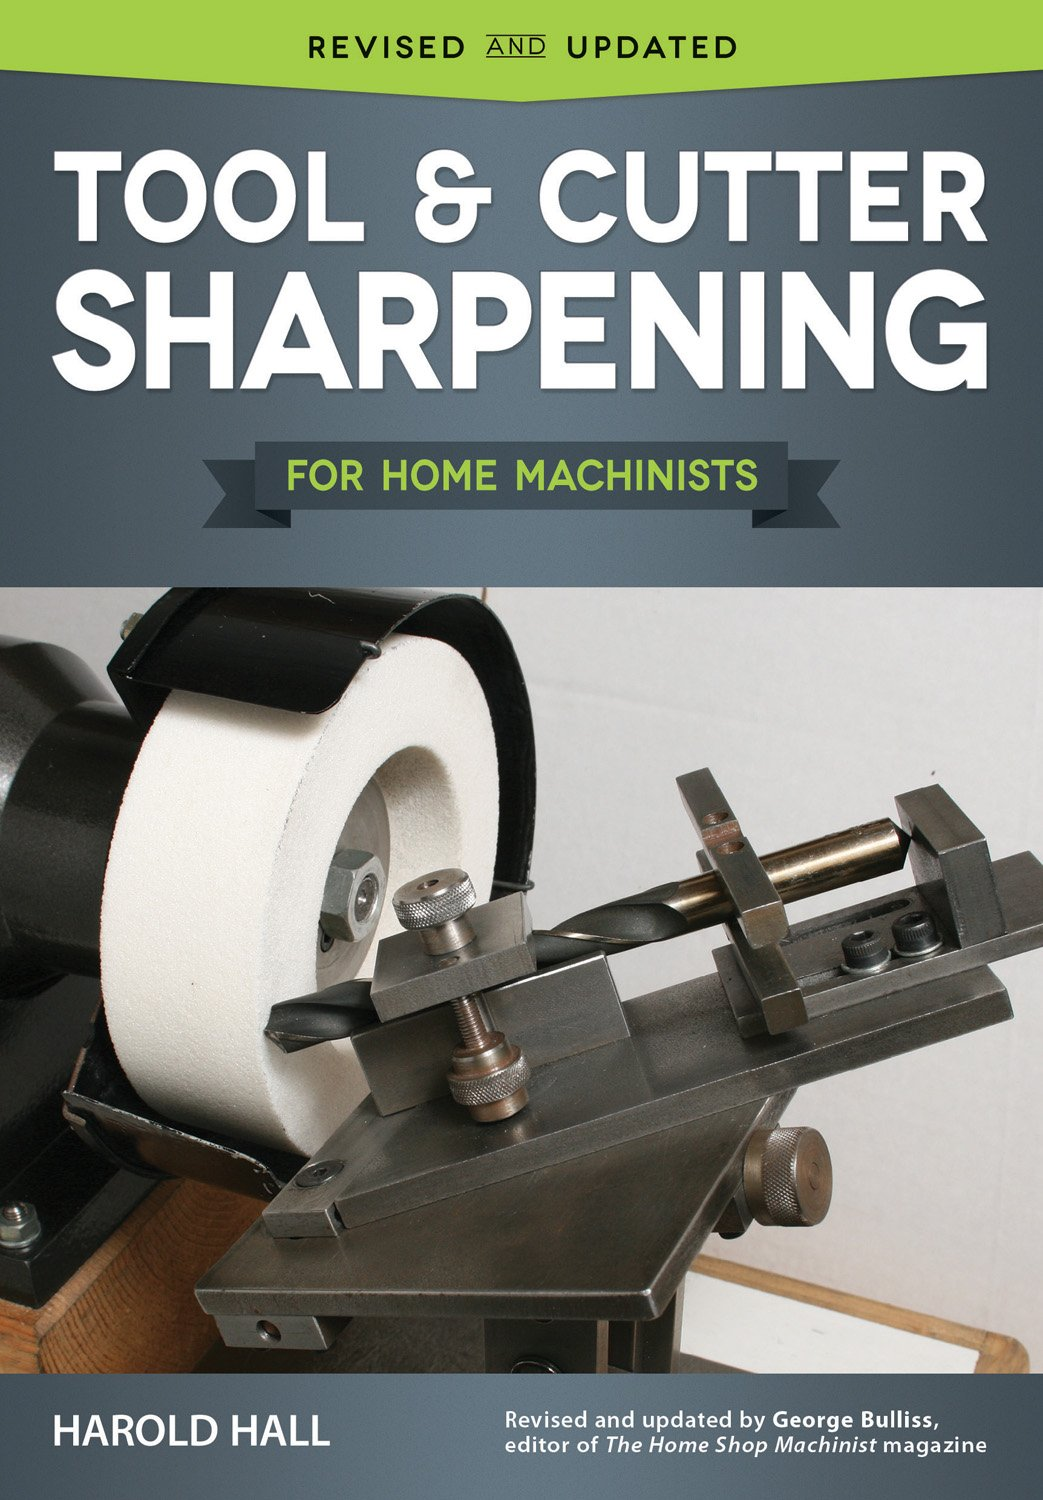 Tool And Cutter Sharpening For Home Machinists Harold Hall. Tool And Cutter Sharpening For Home Machinists Harold Hall 9781565239128 Amazon Books. Wiring. Northern Tool Bench Grinder Wiring Diagram At Scoala.co